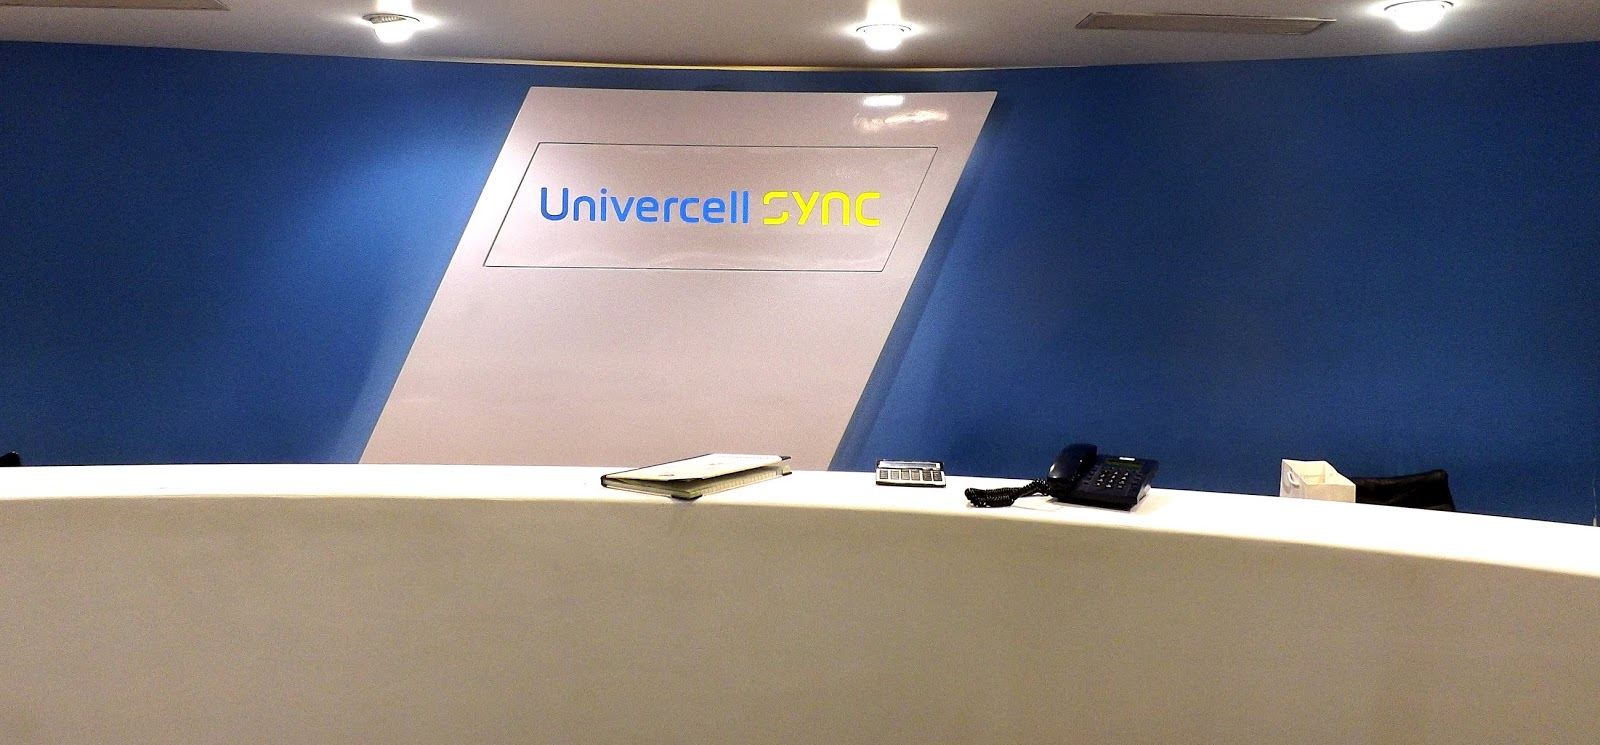 UniverCell Sync Bangalore-My experience